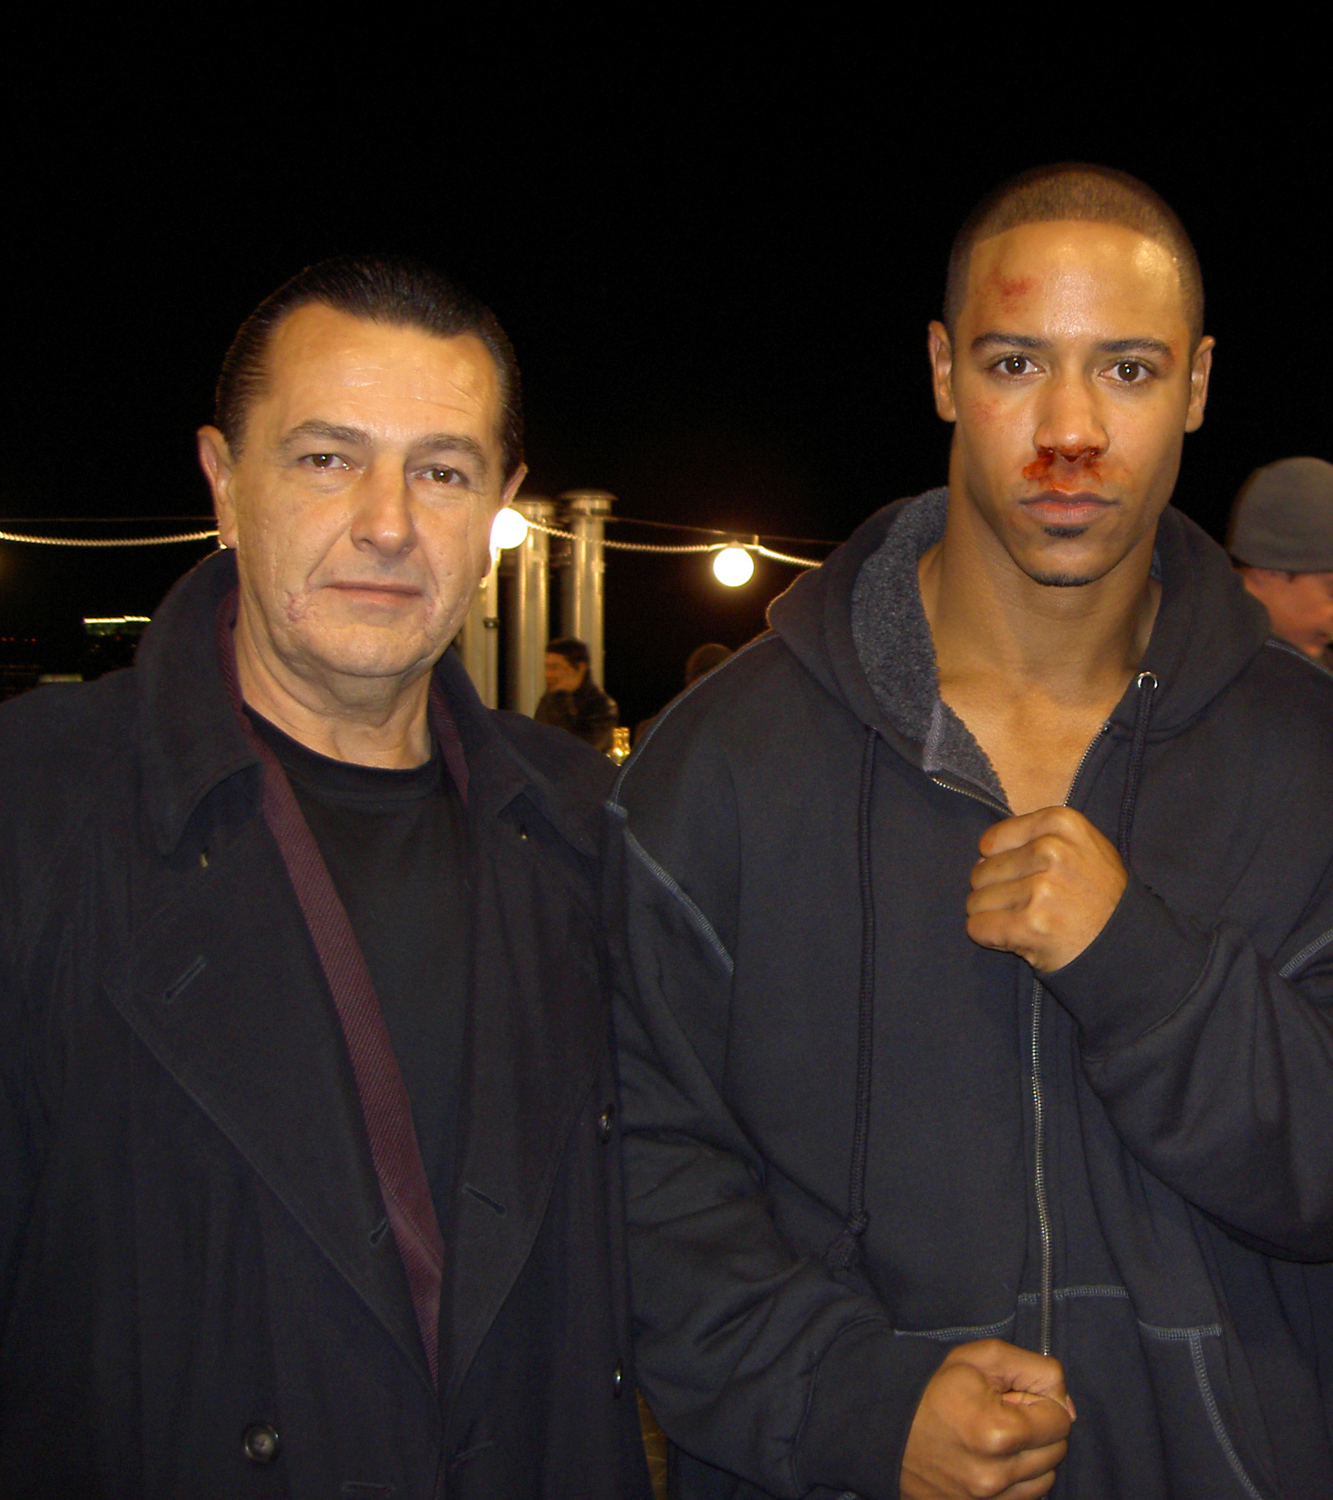 Brian J. White and Vladimir Nazarov